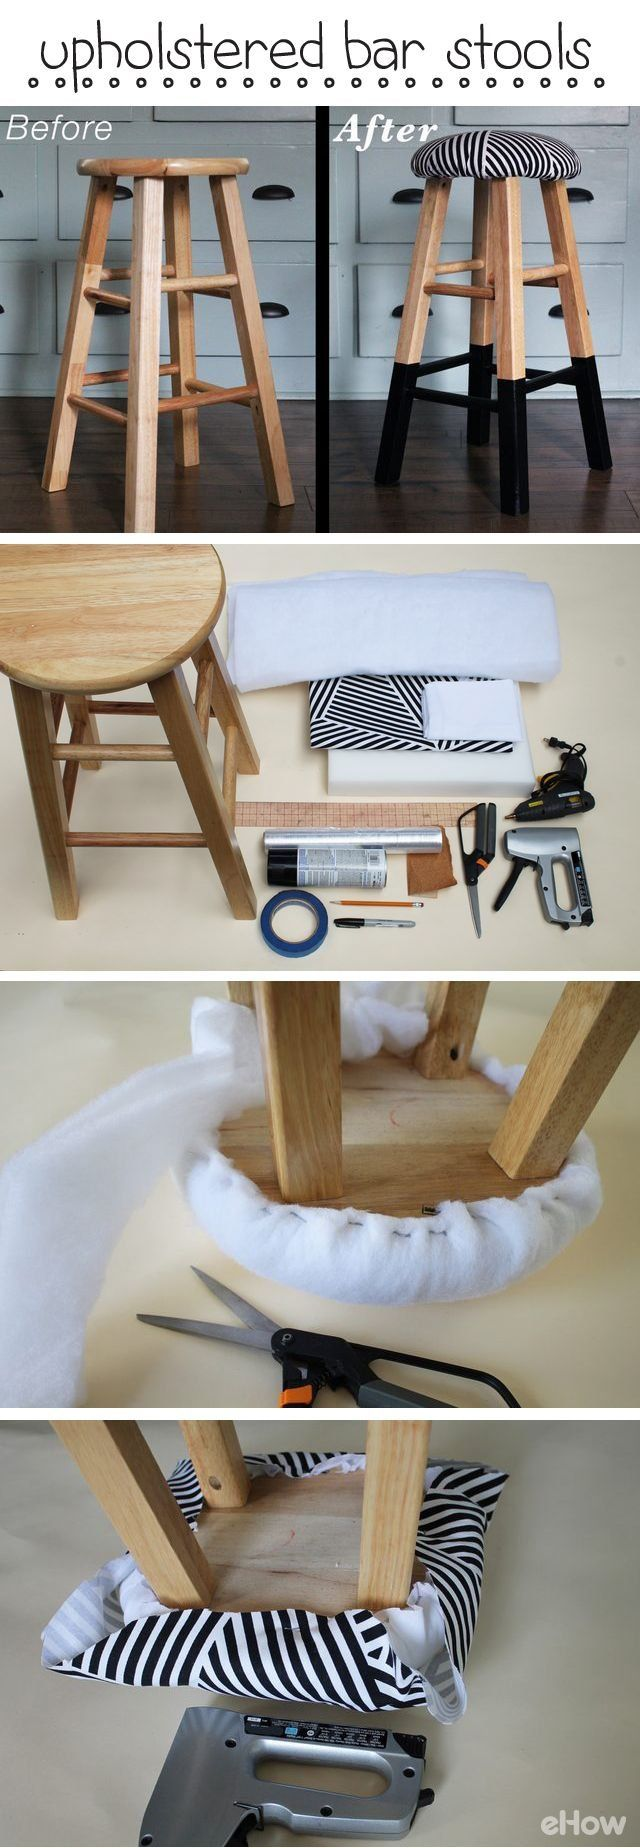 How to Upholster Bar Stools